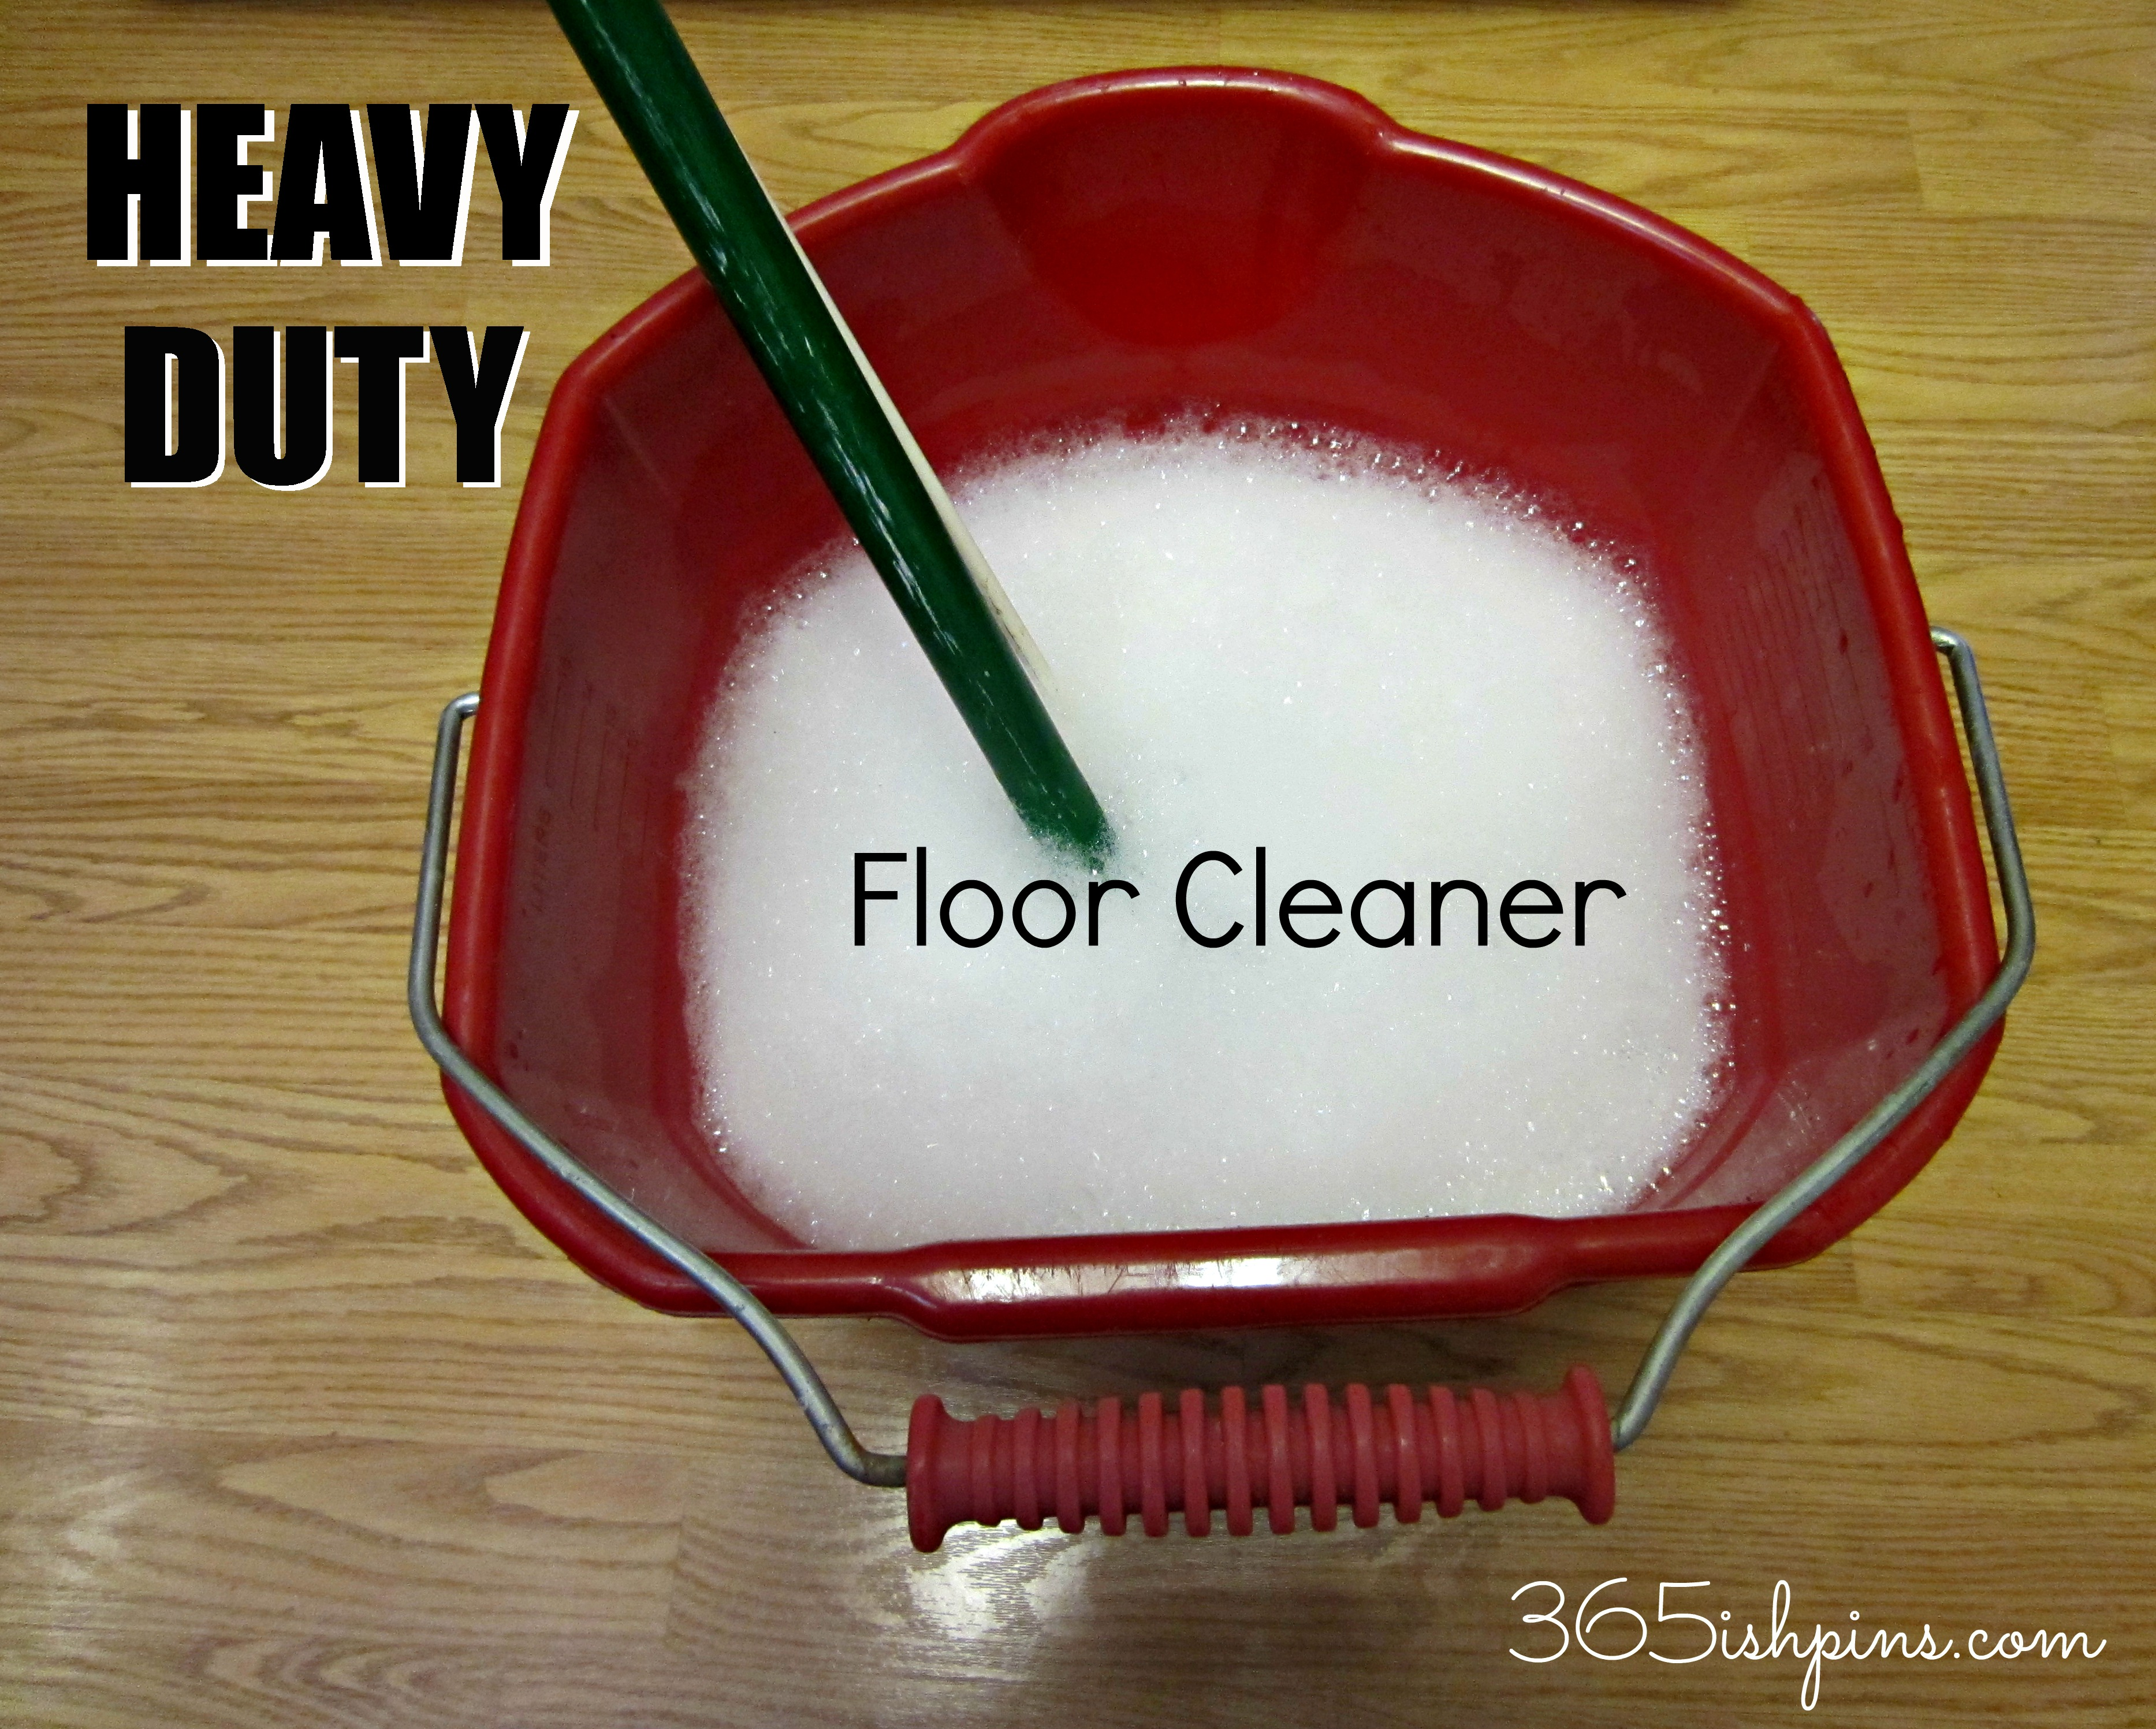 Best Kitchen Floor Mop Heavy Duty Floor Cleaner Diy 365ish Days Of Pinterest